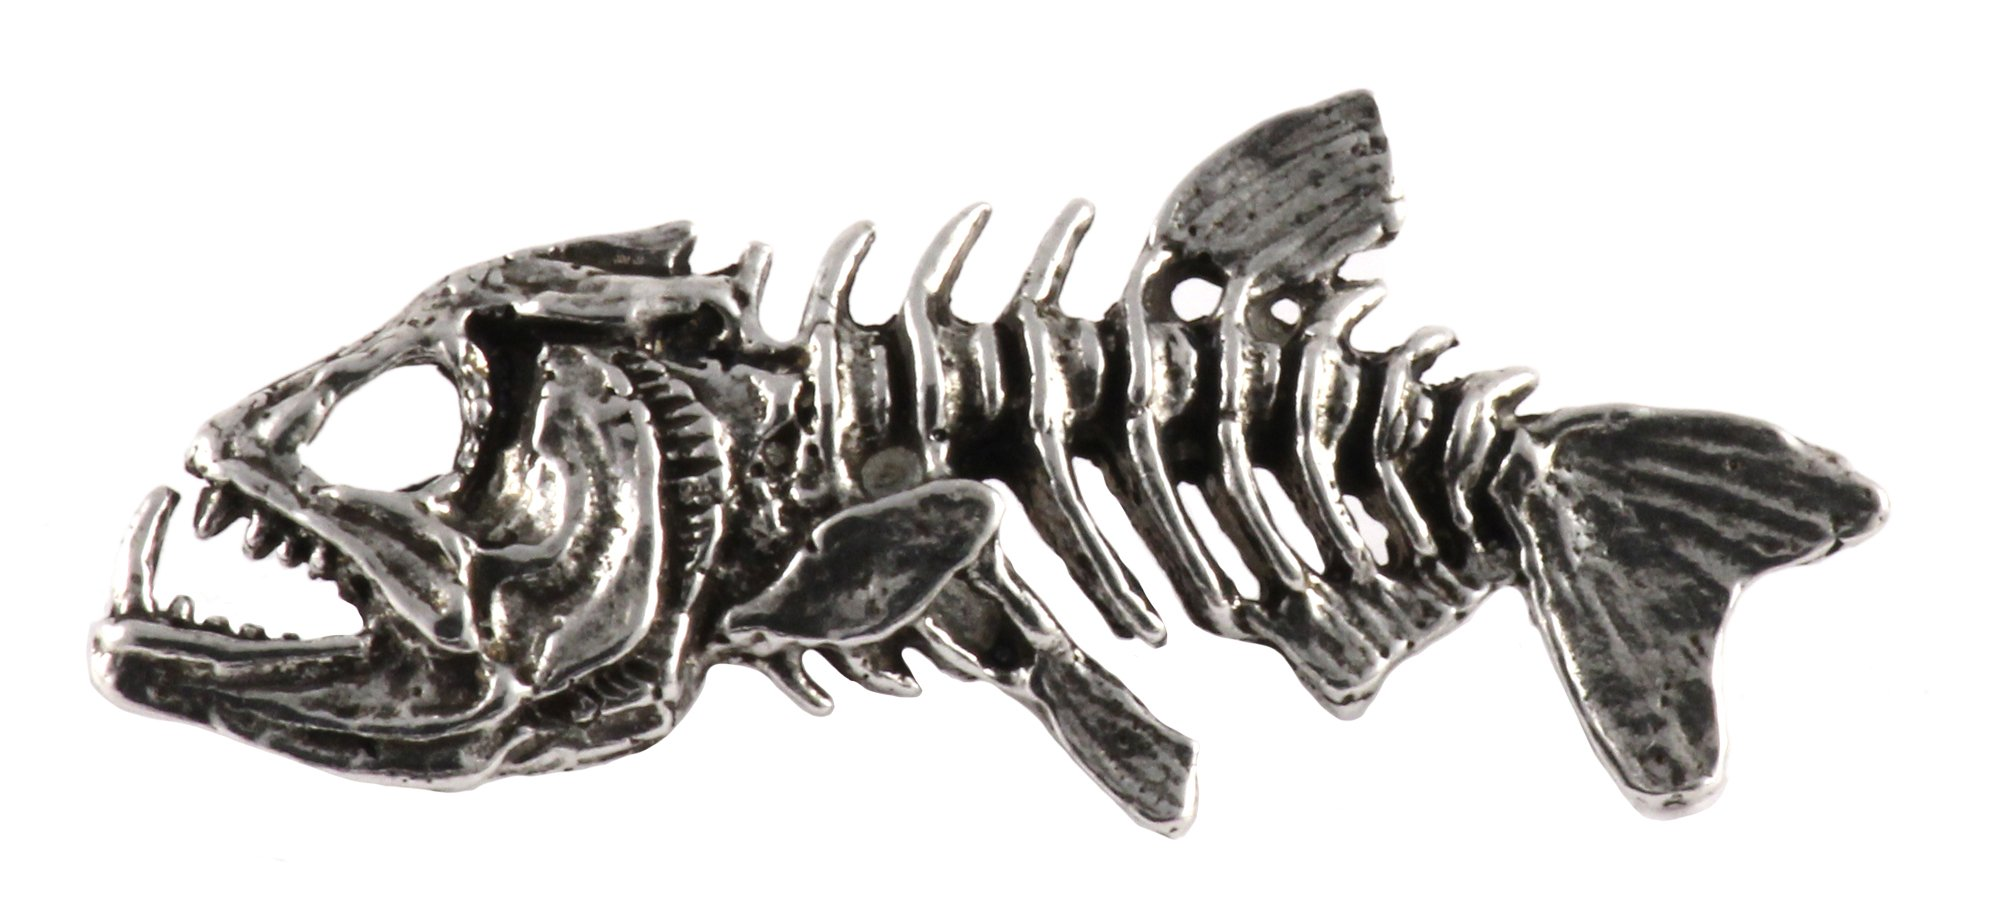 Creative Pewter Designs Pewter Skeleton Fish, Handcrafted Freshwater Fish Lapel Pin Brooch, Antique Finish, F112